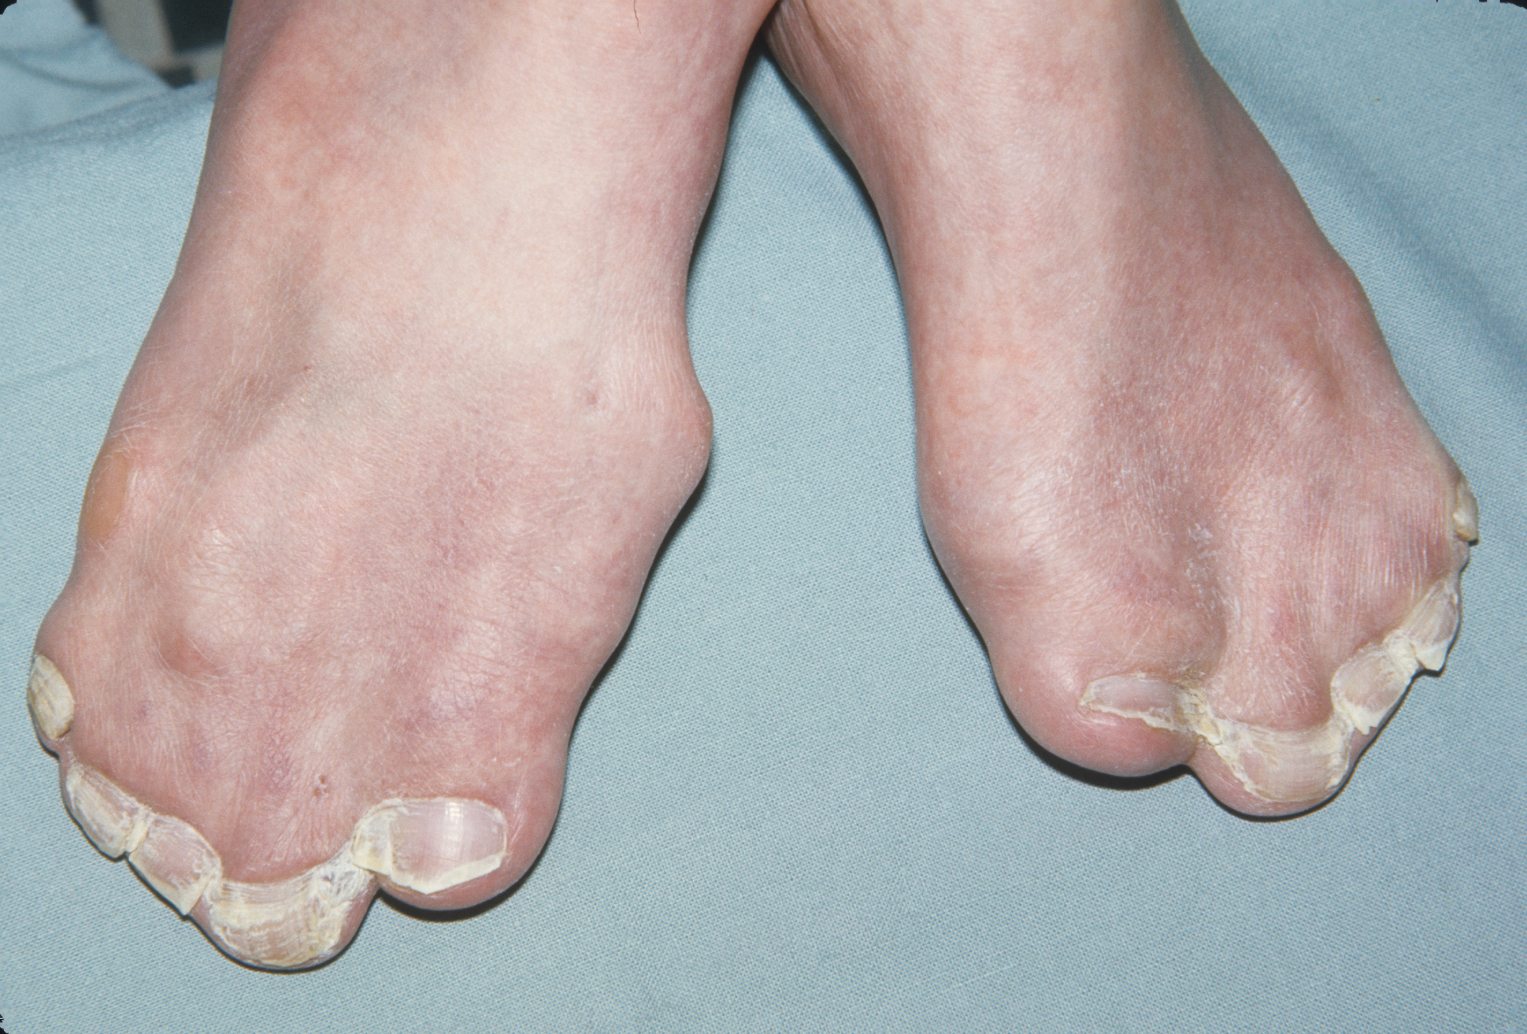 Fusion of toes in Apert syndrome